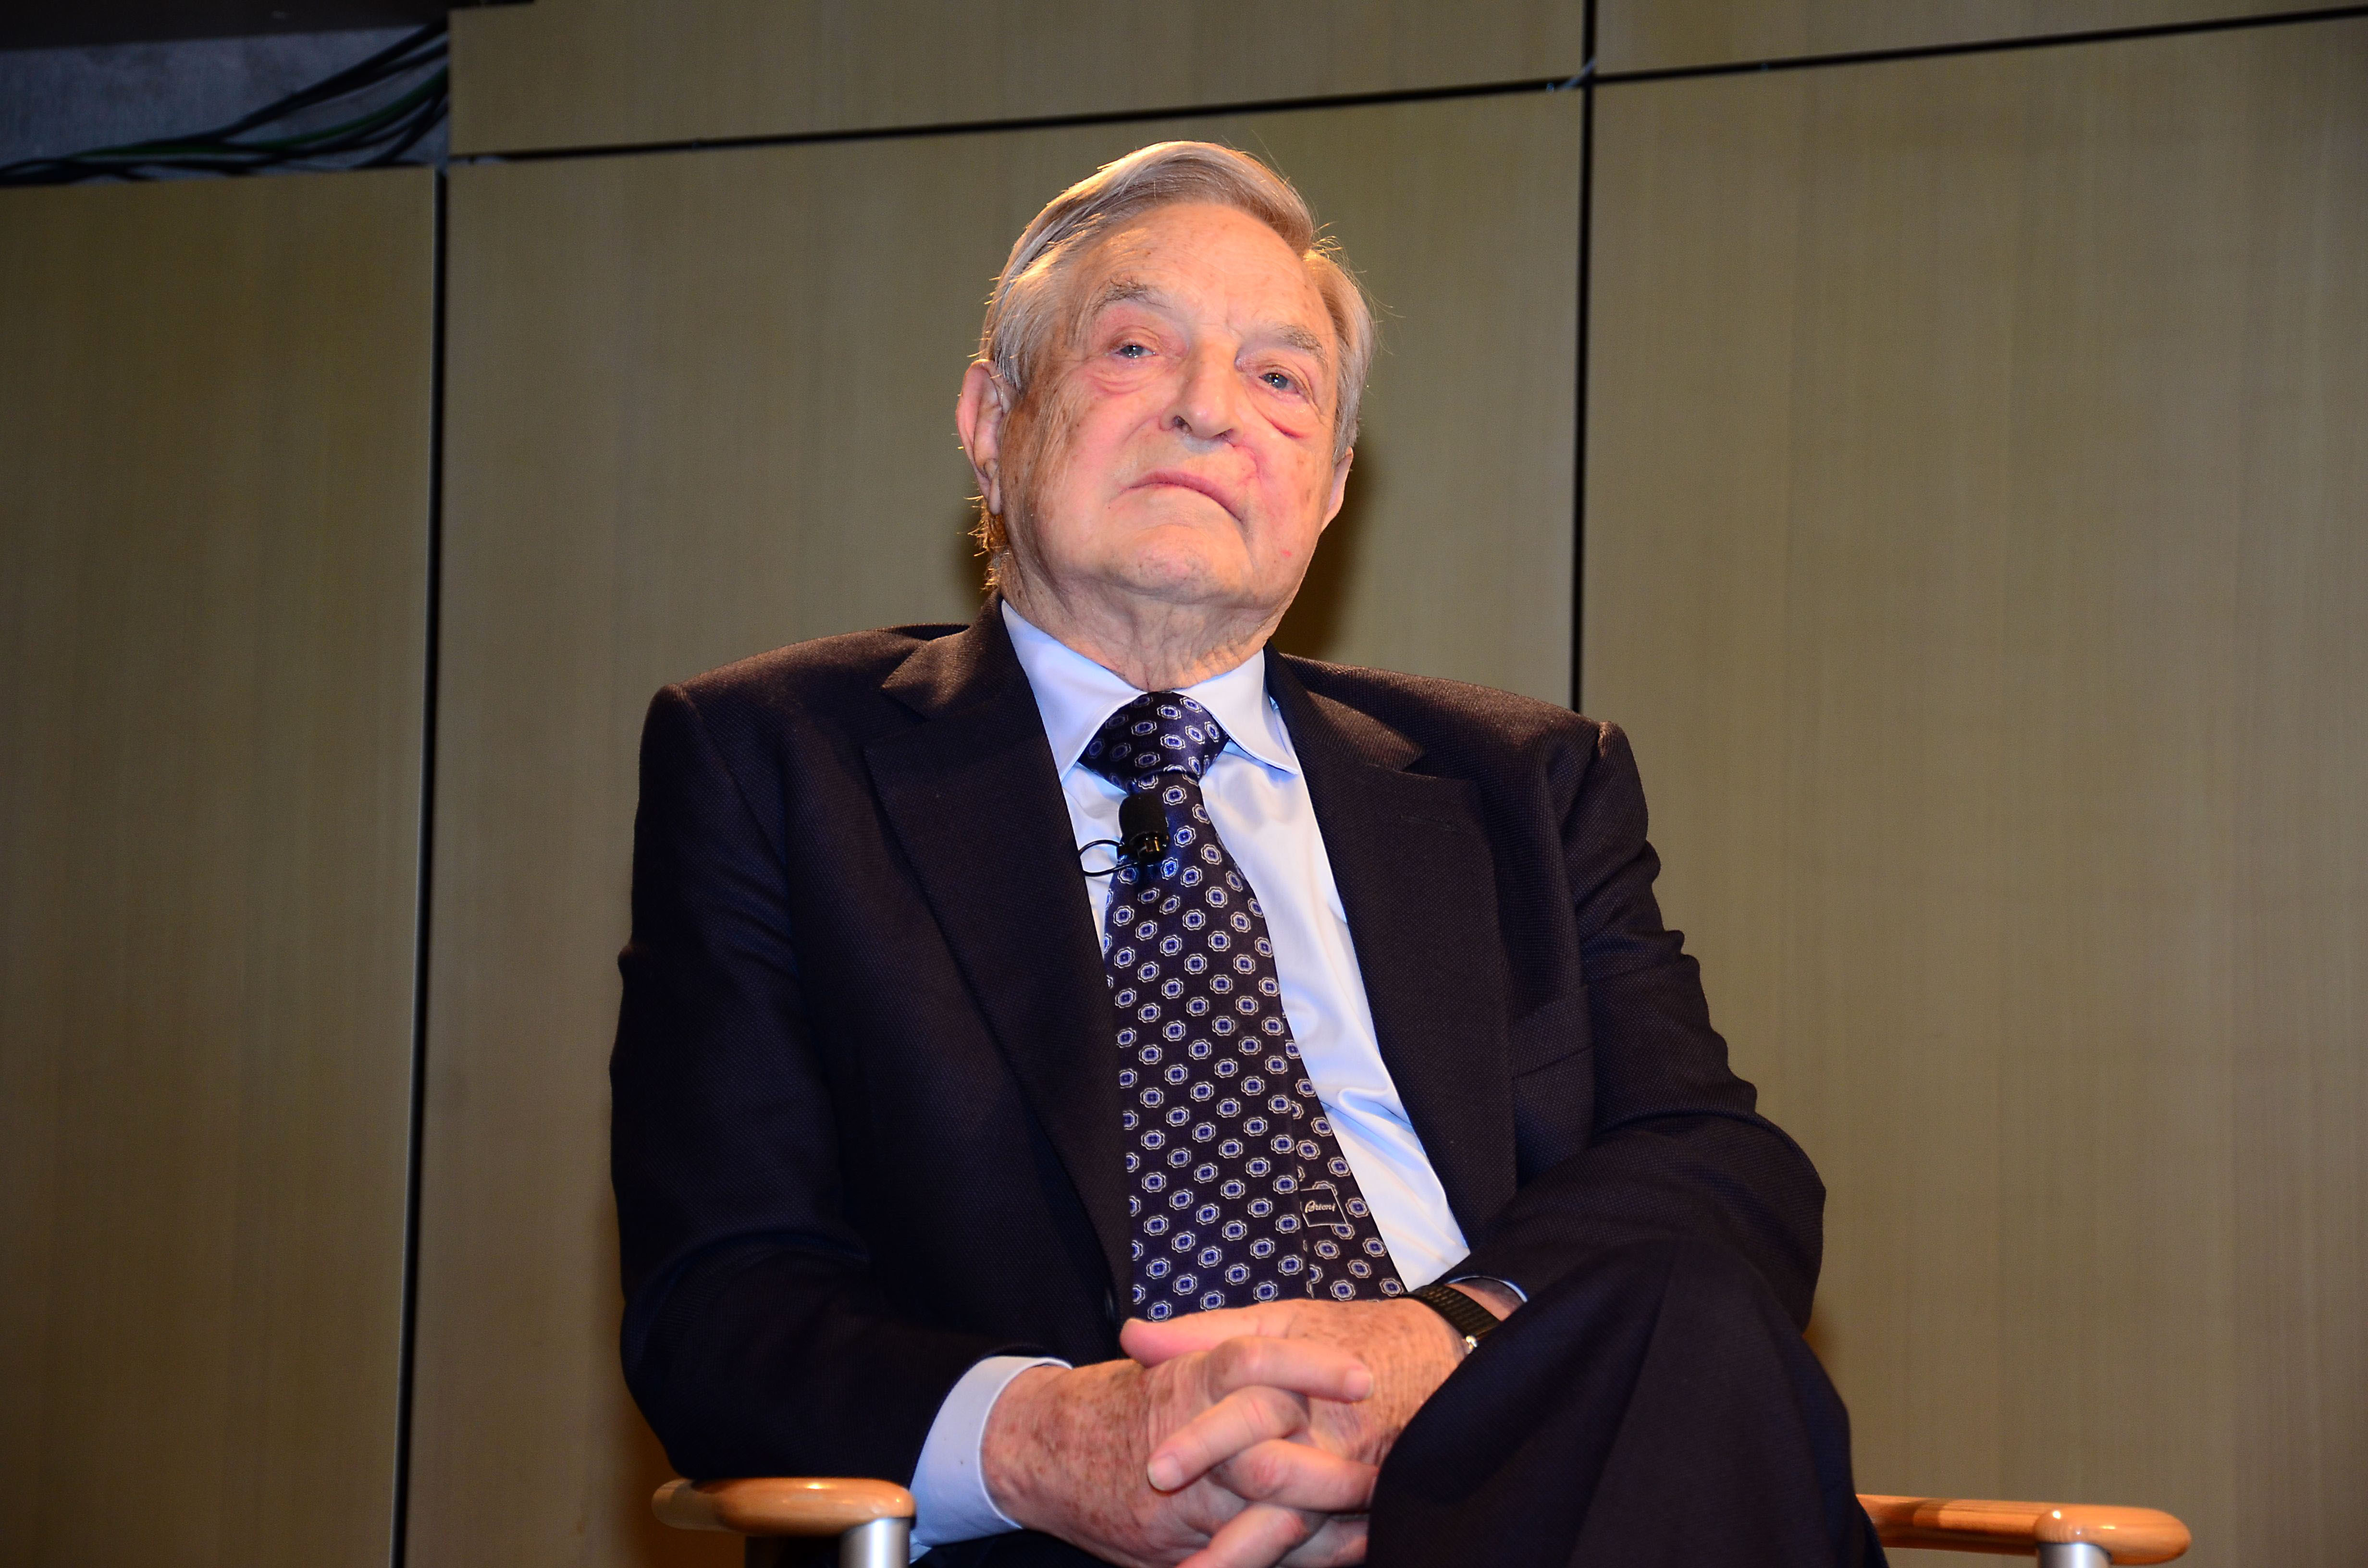 Empfang fuer George Soros in Berlin